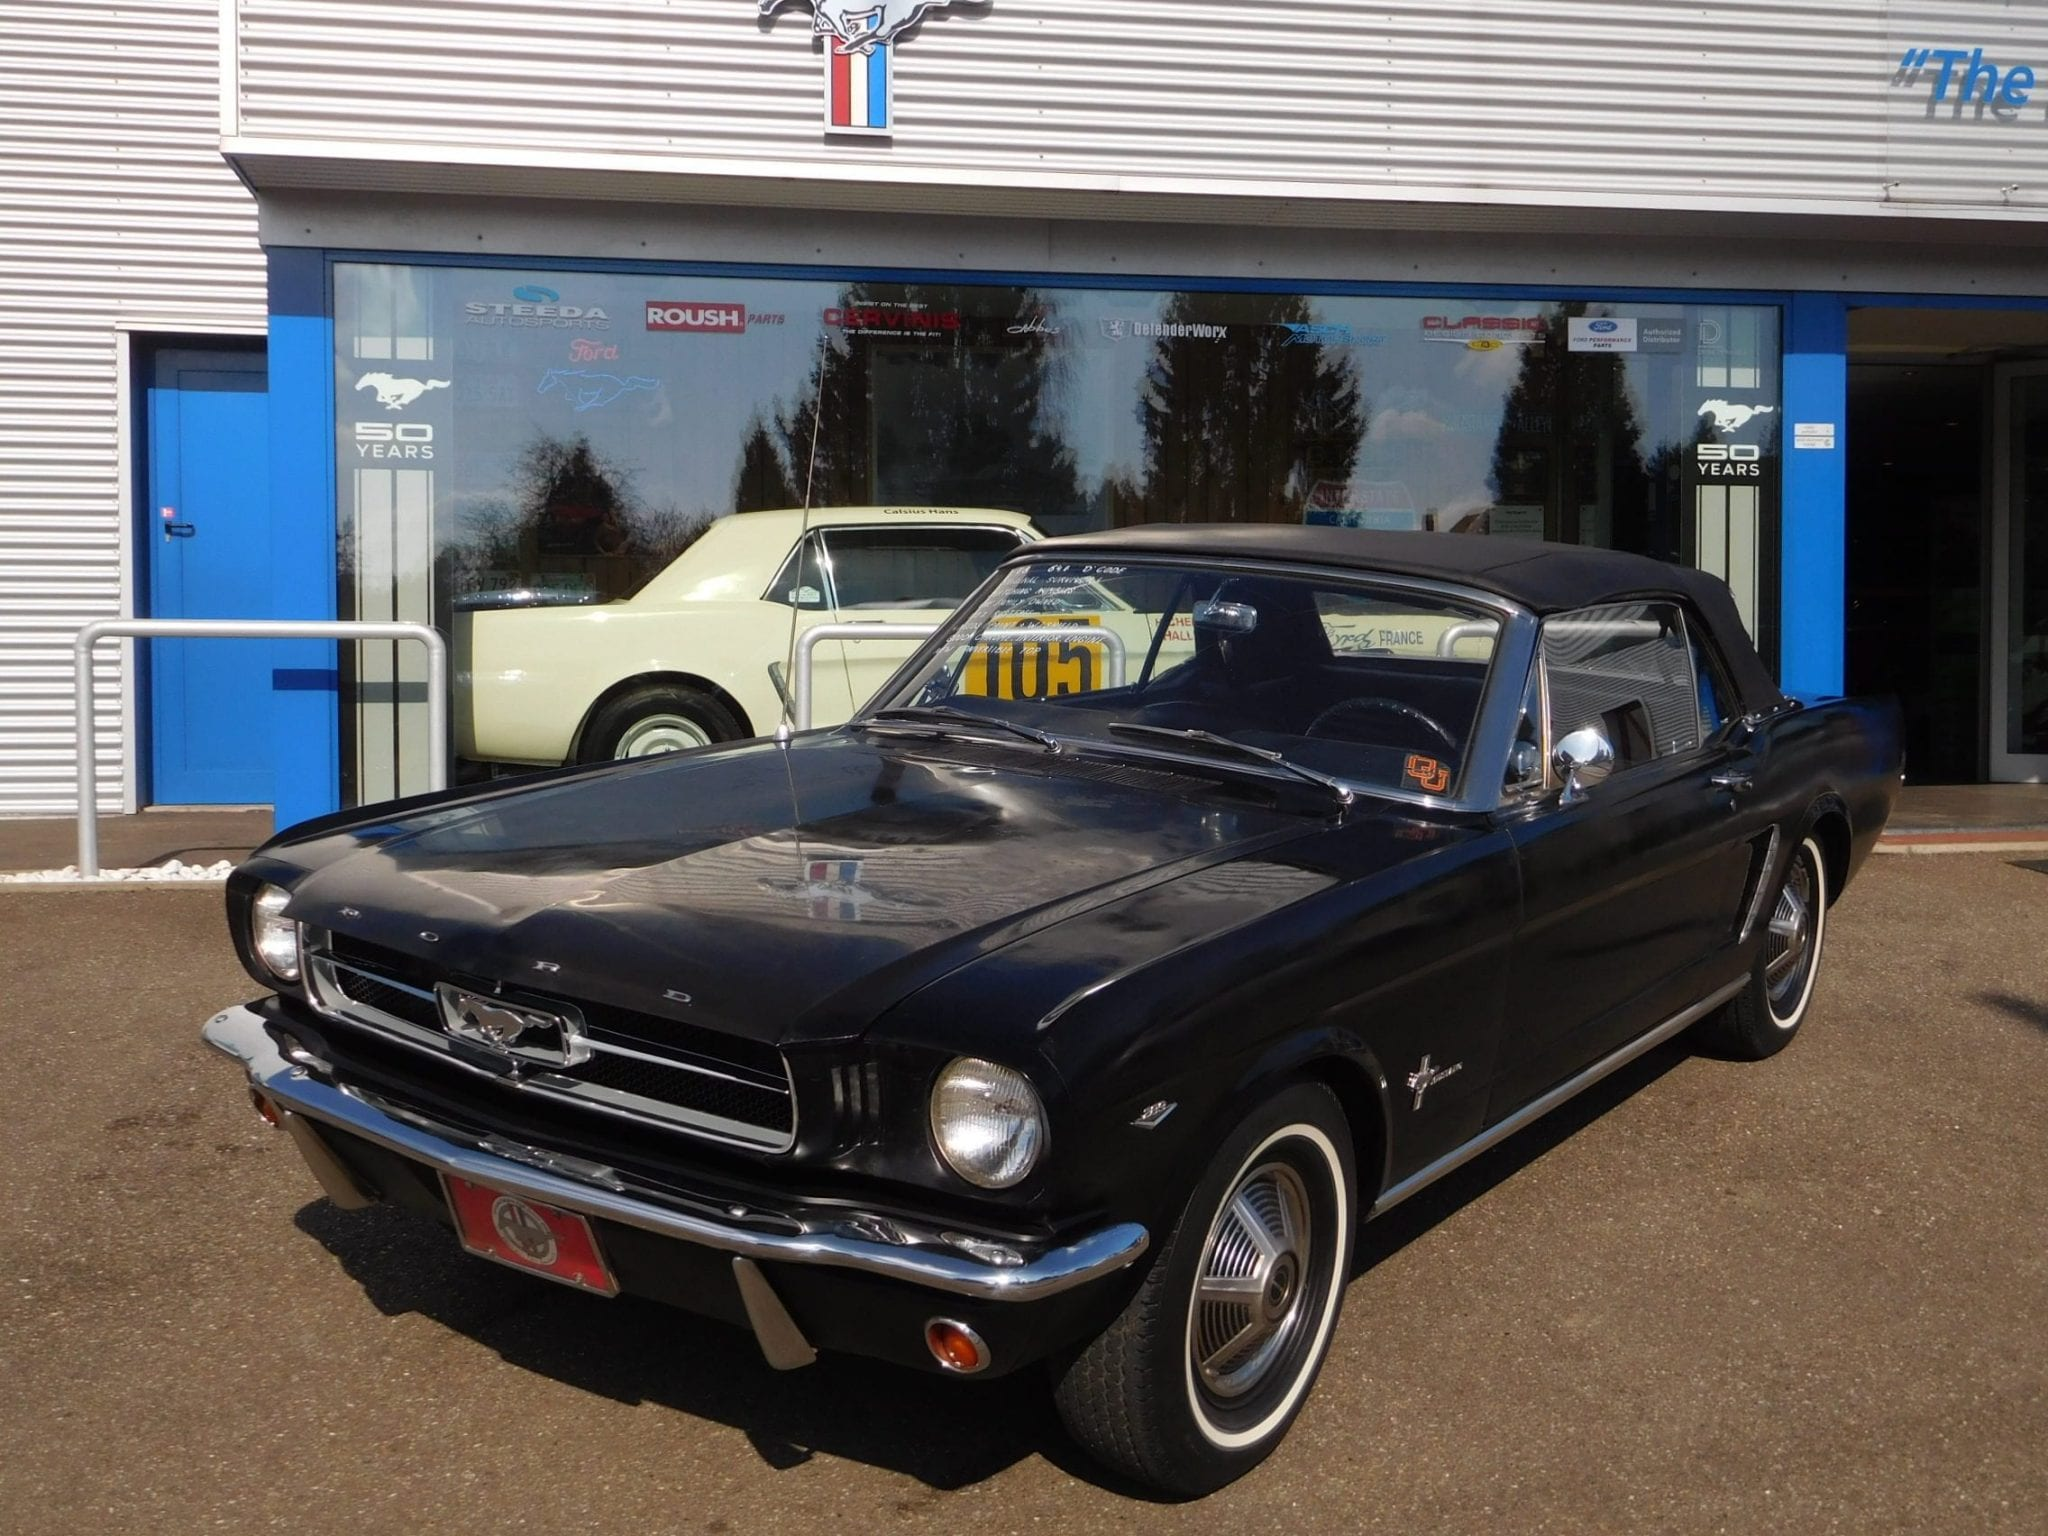 Ford Mustang 1964 Convertible 698 The Garage Paint Colors